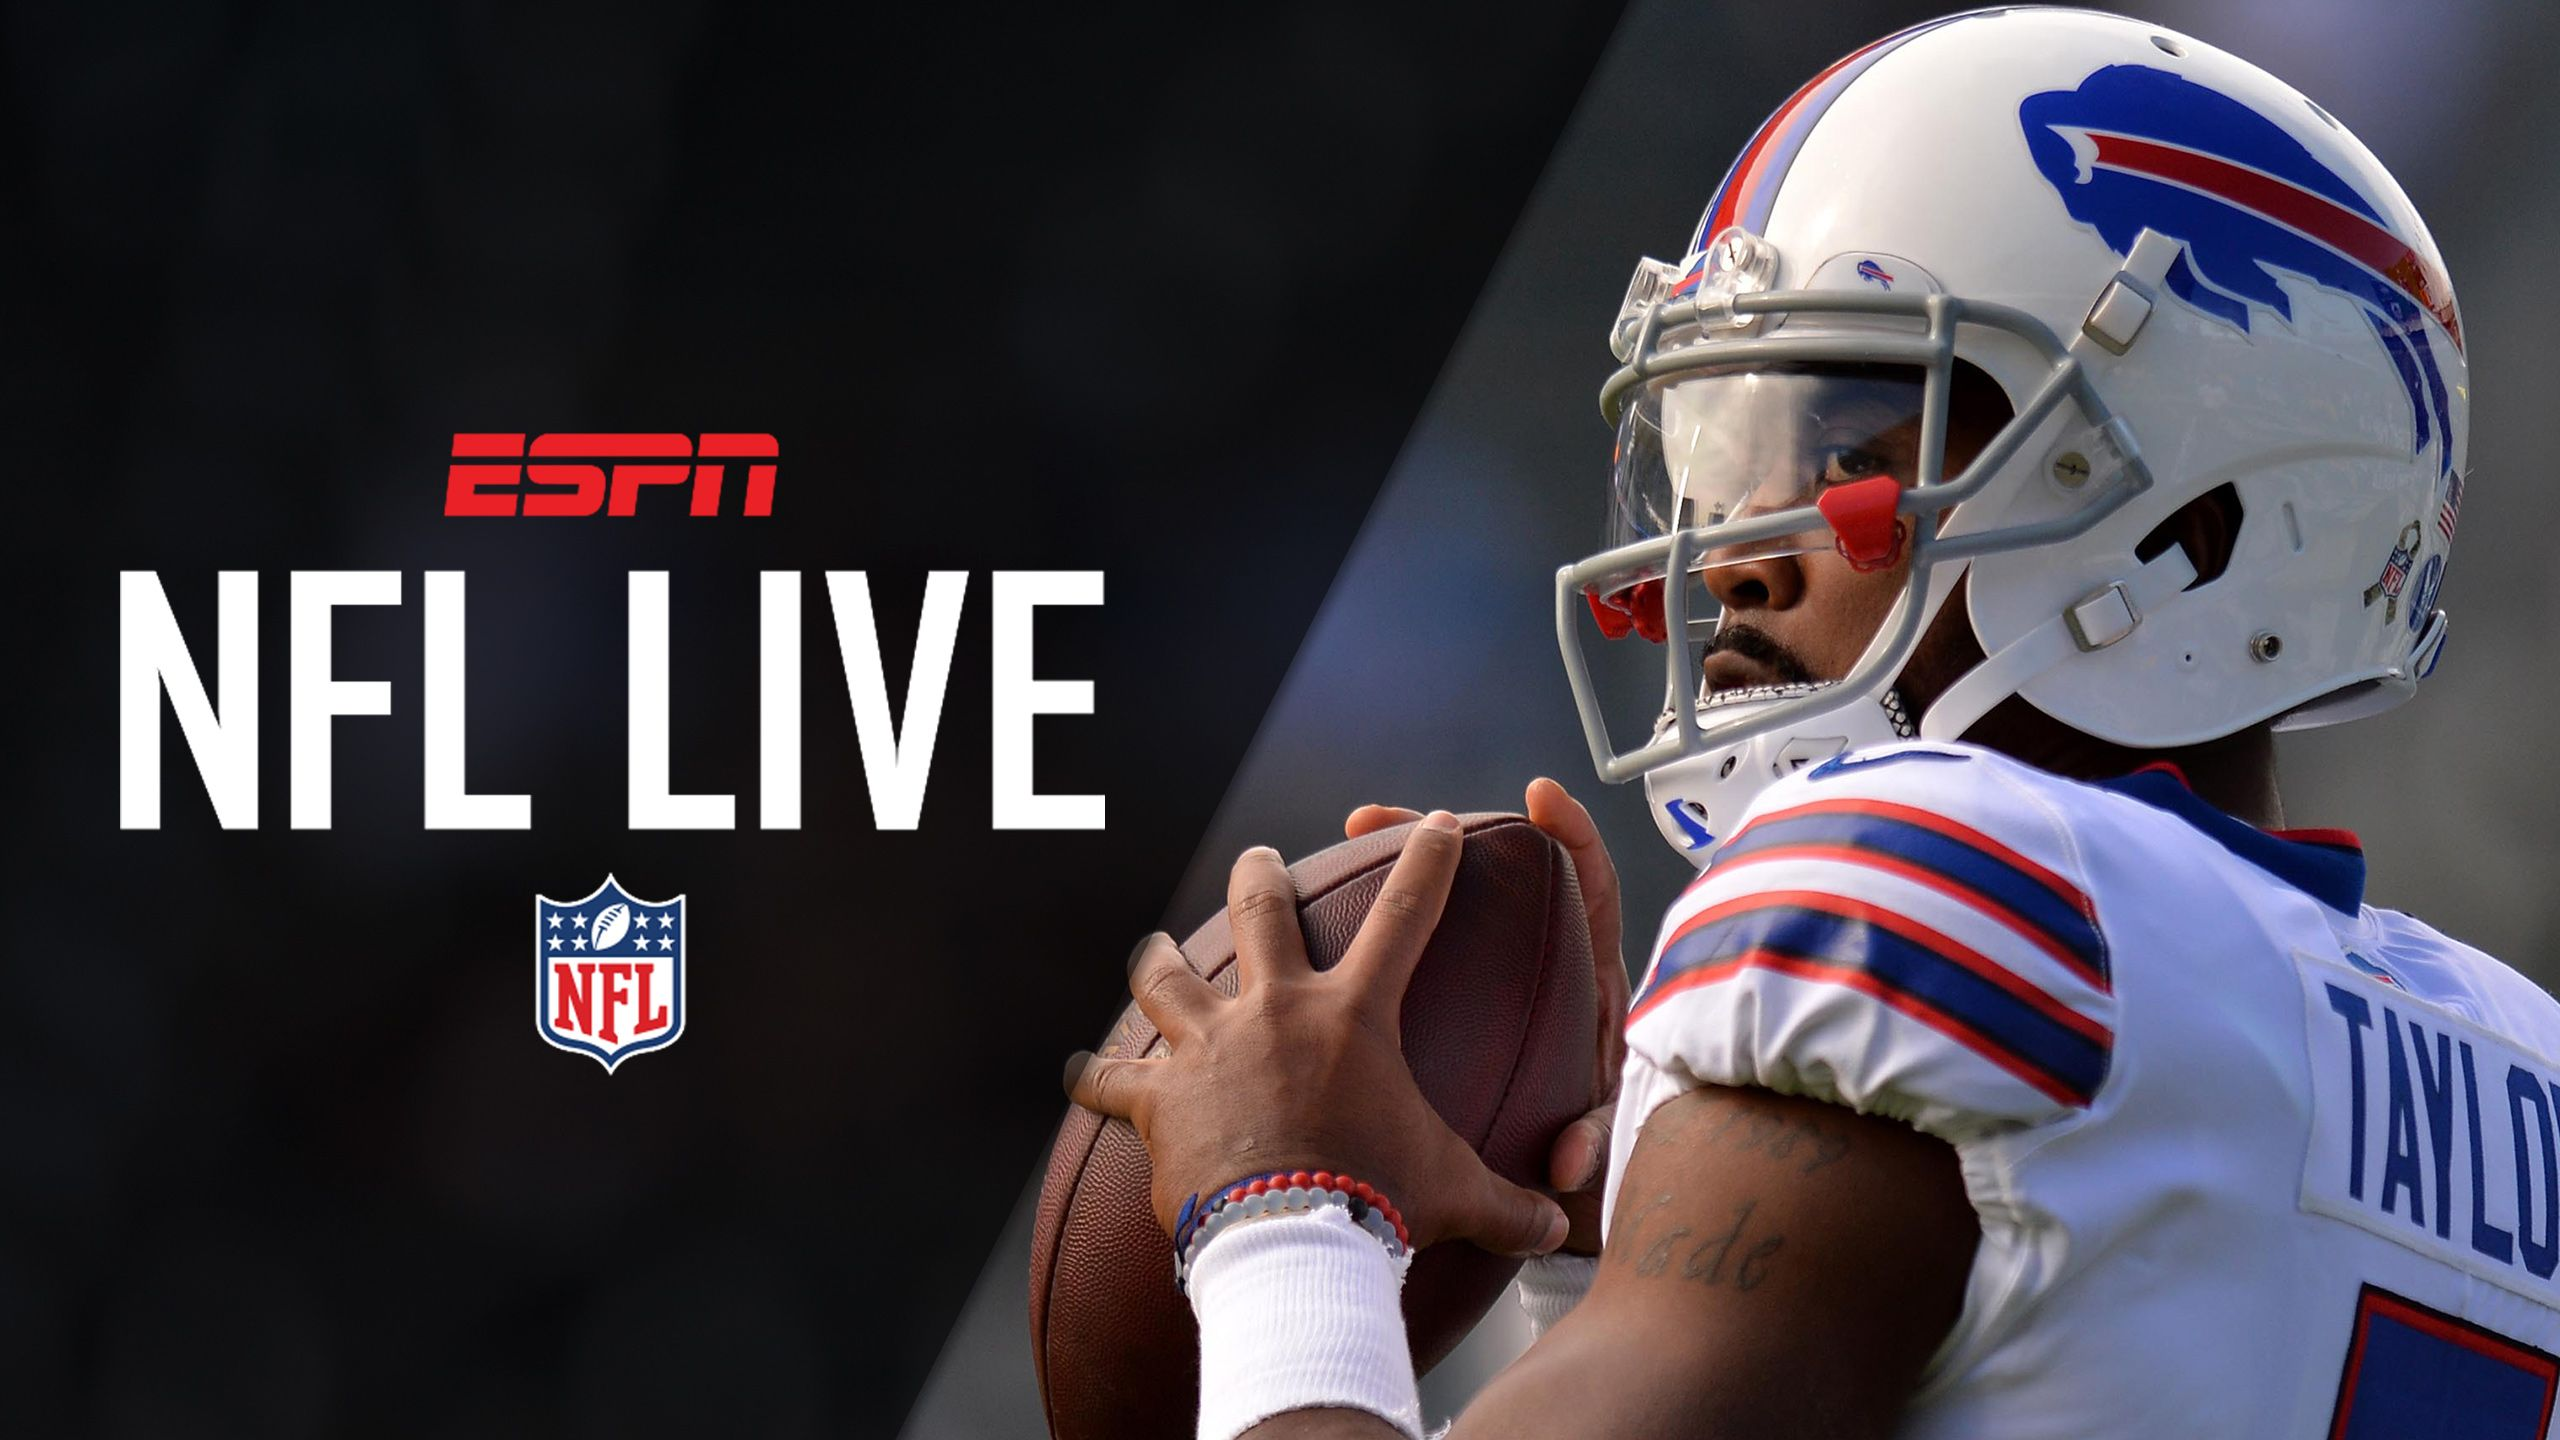 NFL Live presented by Dr. Scholl's